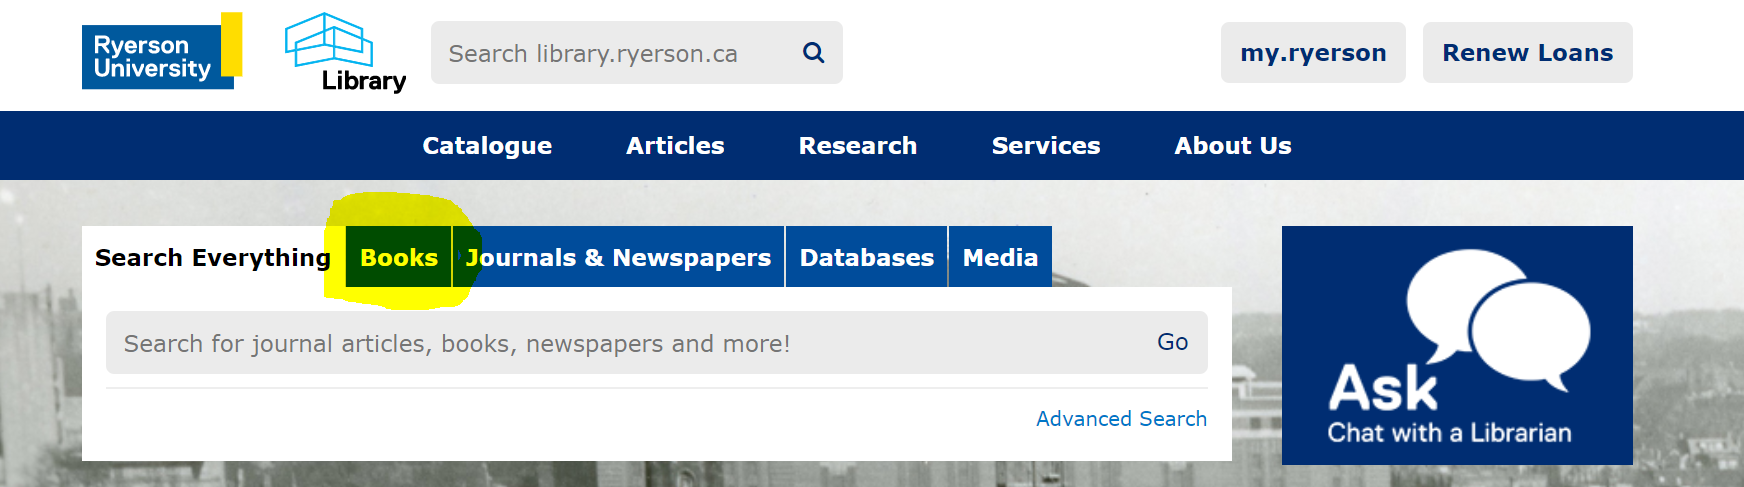 front page of Ryerson Library website, Book tab is highlighted in yellow